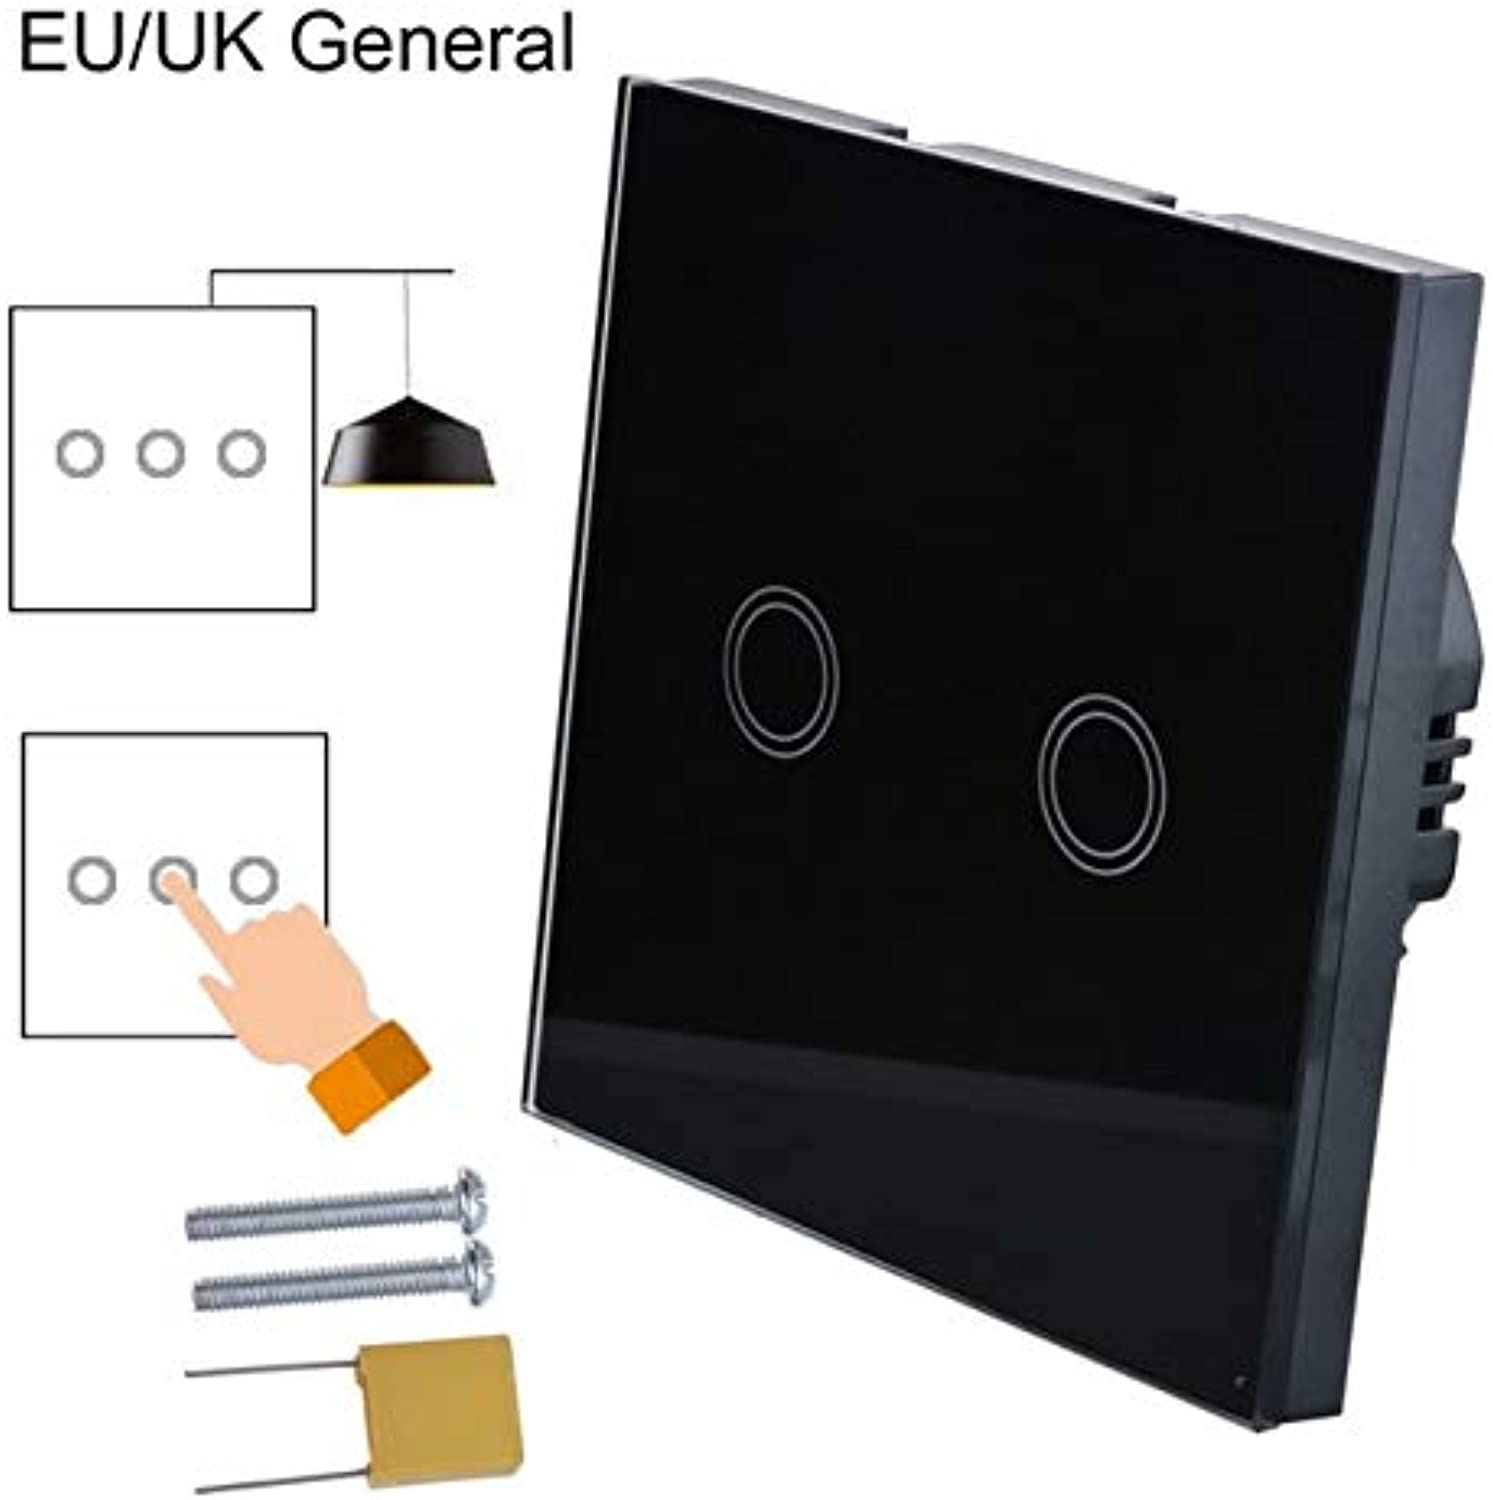 Hoomall 2pcs EU UK Standard 1 2 3 Gang 1 Way Crystal Glass Panel Smart Switch Contorl Home Light Touch Screen Switch Panel  (color  G194618, Size  2PCS)